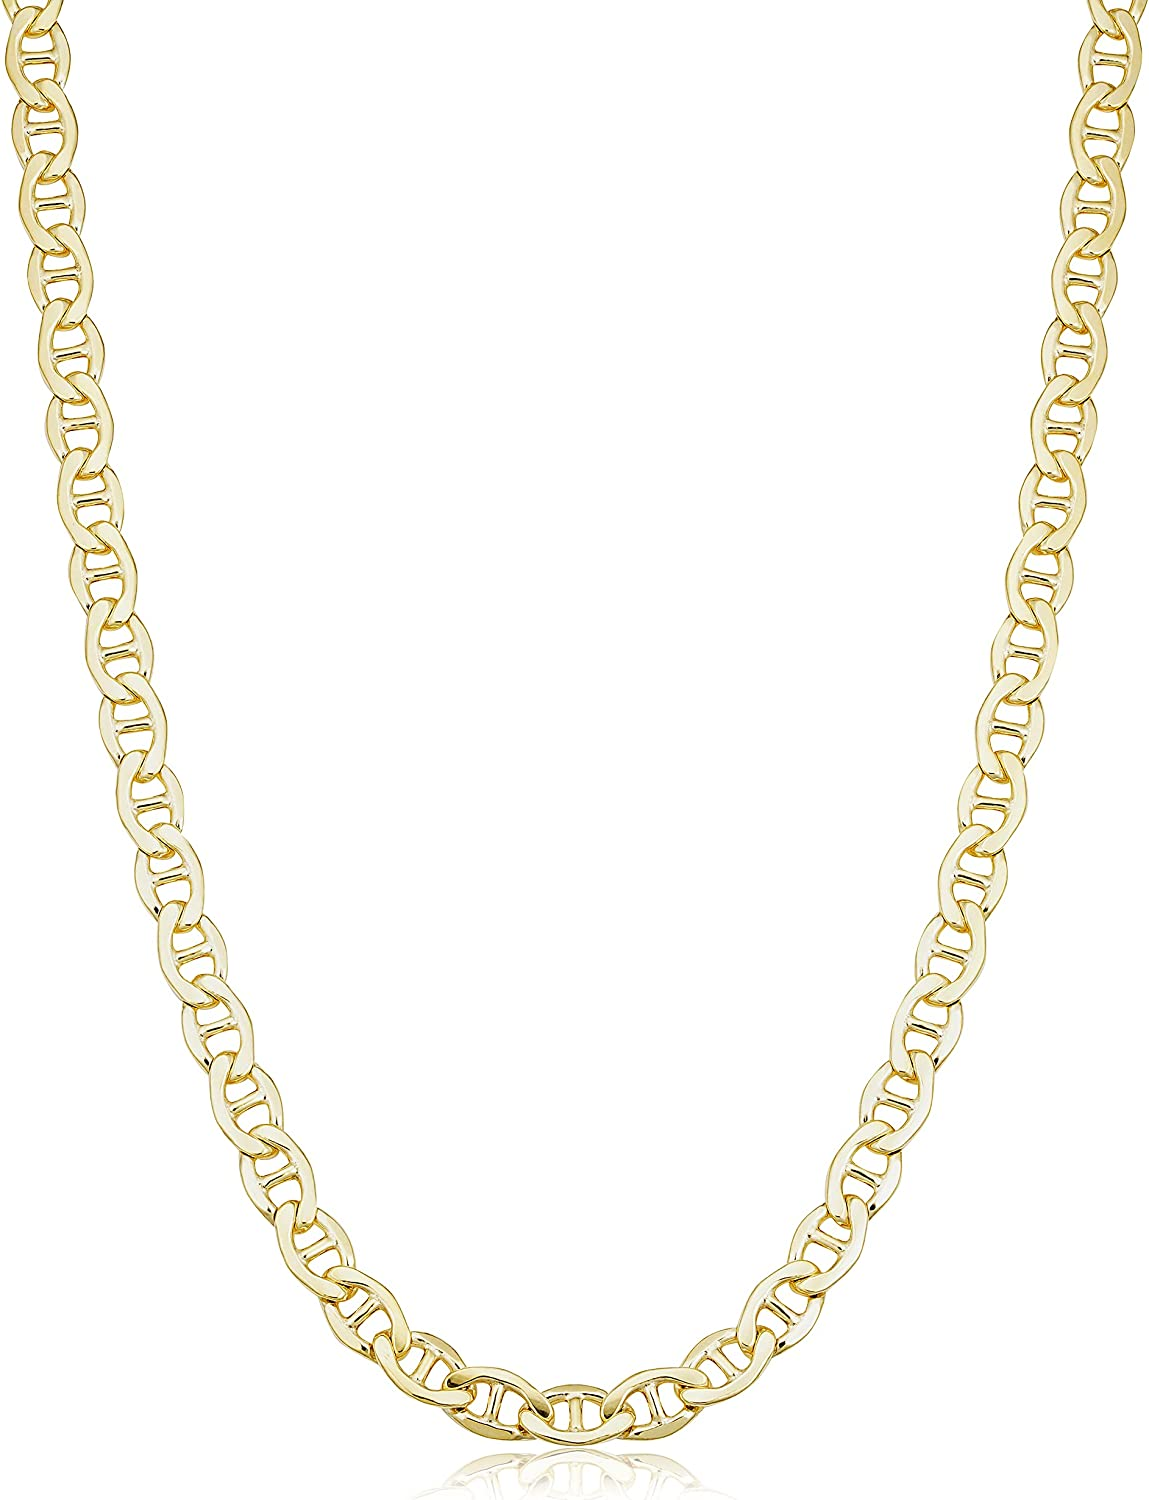 Solid 14k Yellow Gold Filled Mariner Link Chain Necklace for Men and Women (3.3 mm, 4 mm, 5 mm, 5.8 mm or 7.8 mm)